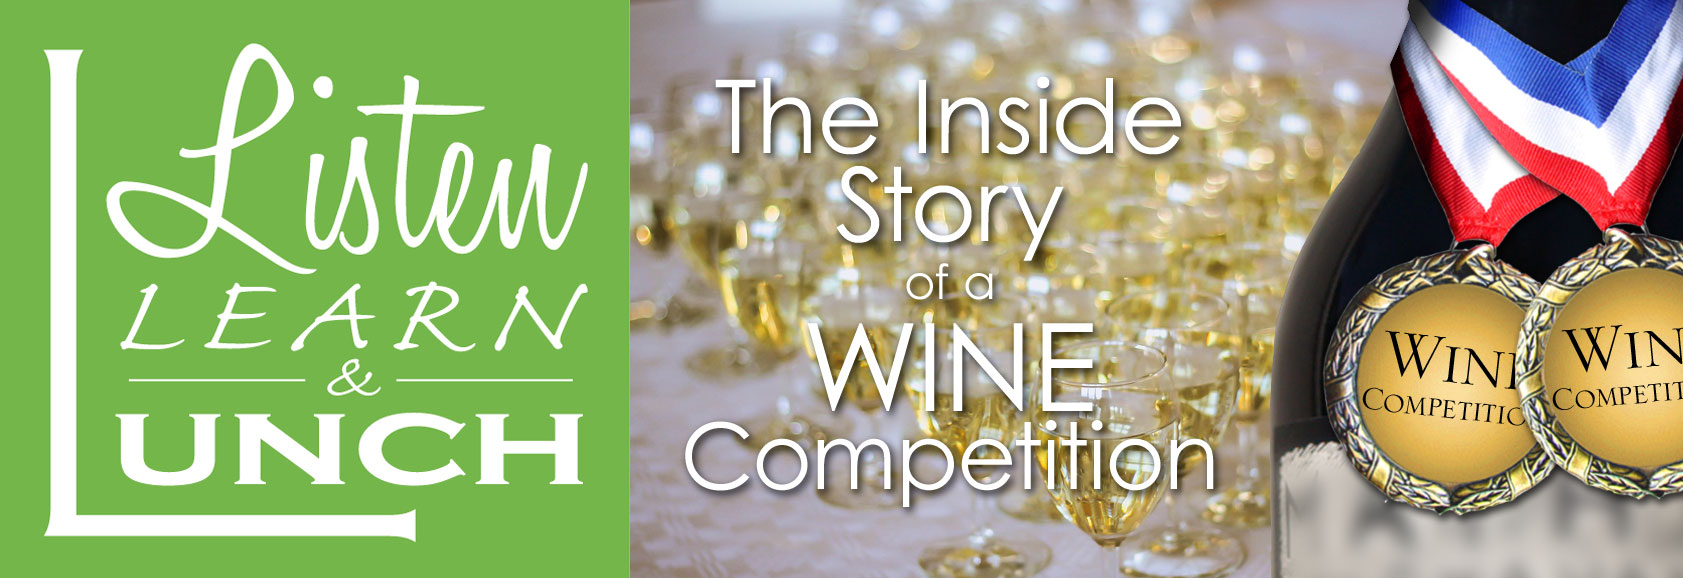 The Inside Story of a Wine Competition